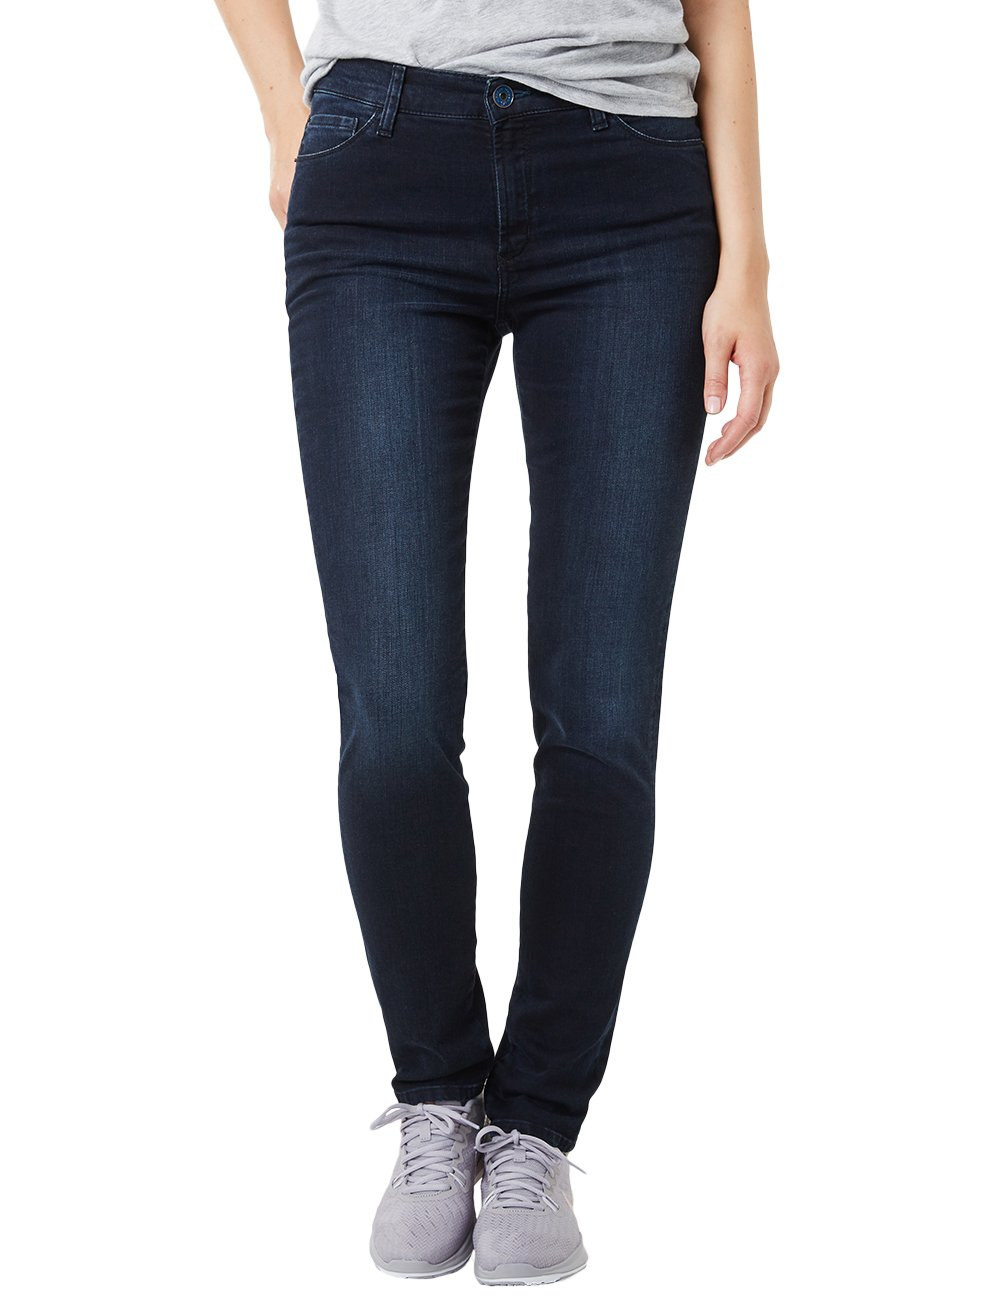 With Femme Used Buffies Coupe SkinnyBlaublue Dark Black Jean Katy 445W34 l34 Pioneer tsdrQCxh